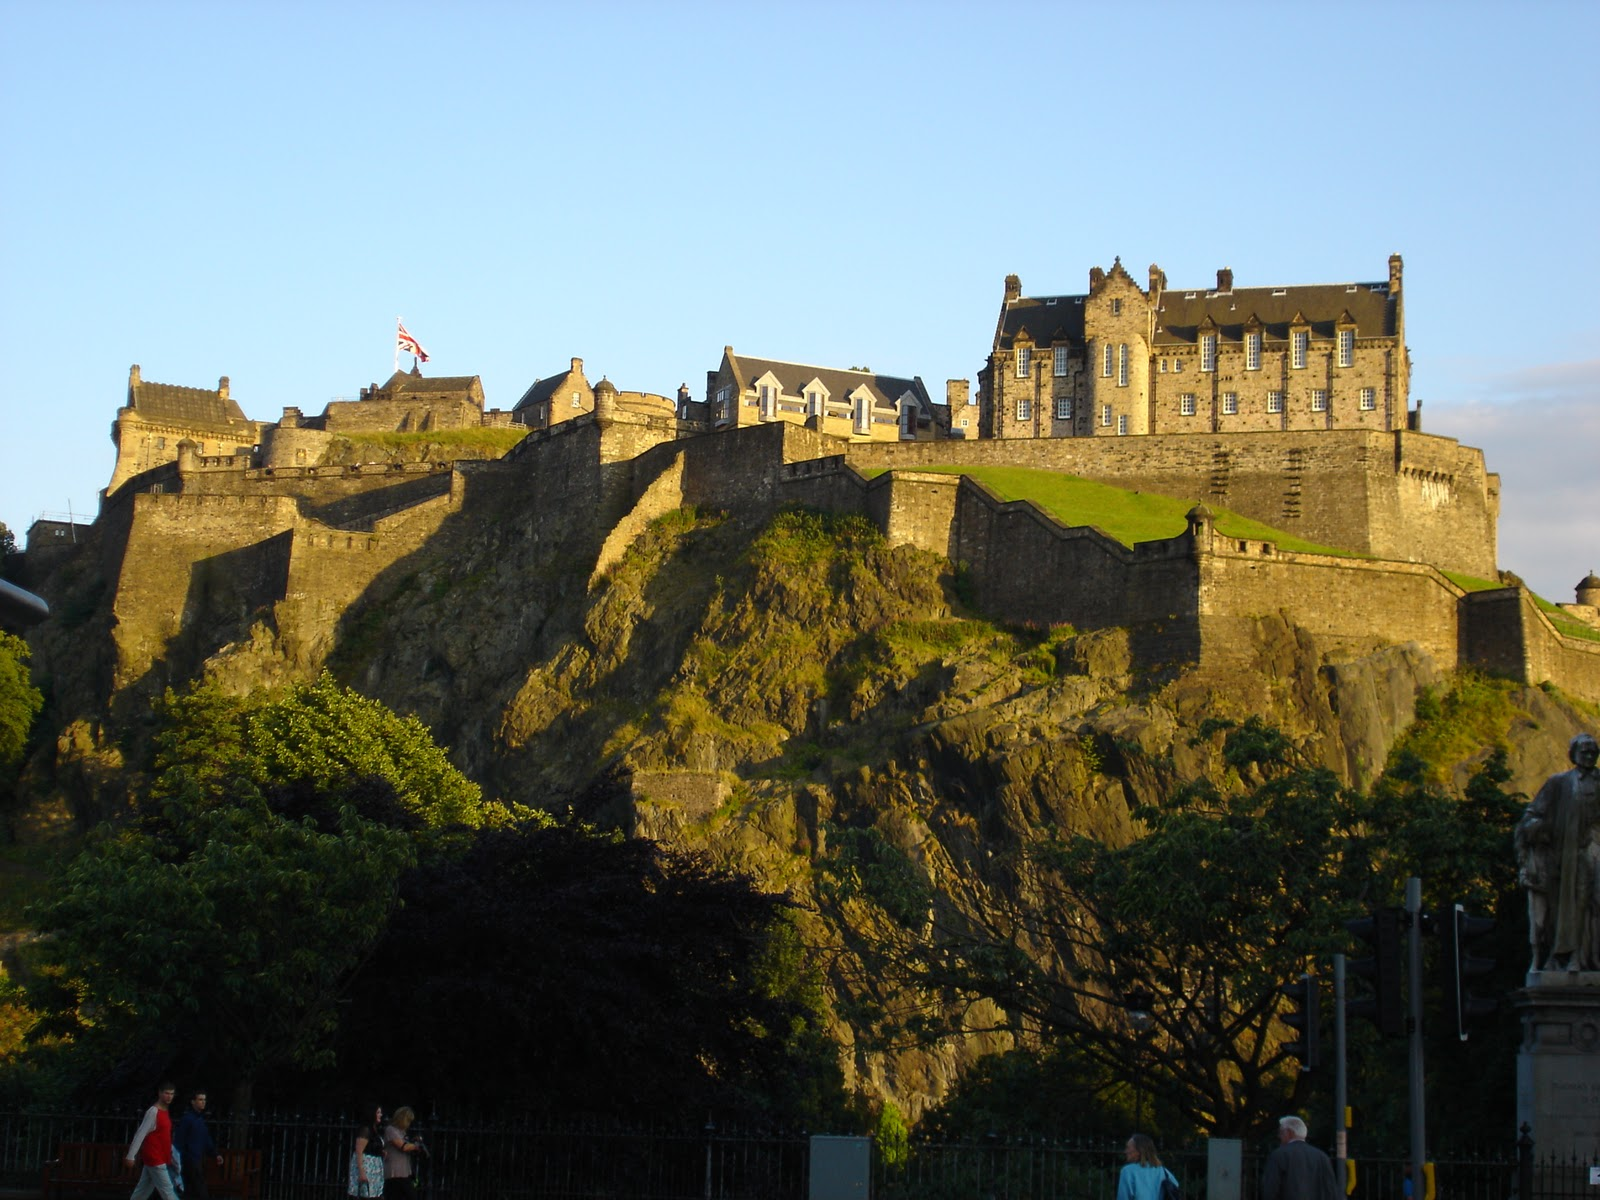 Edinburgh 39 S Most Famous Landmark Is The Edinburgh Castle Which Is The Venue For The Annual